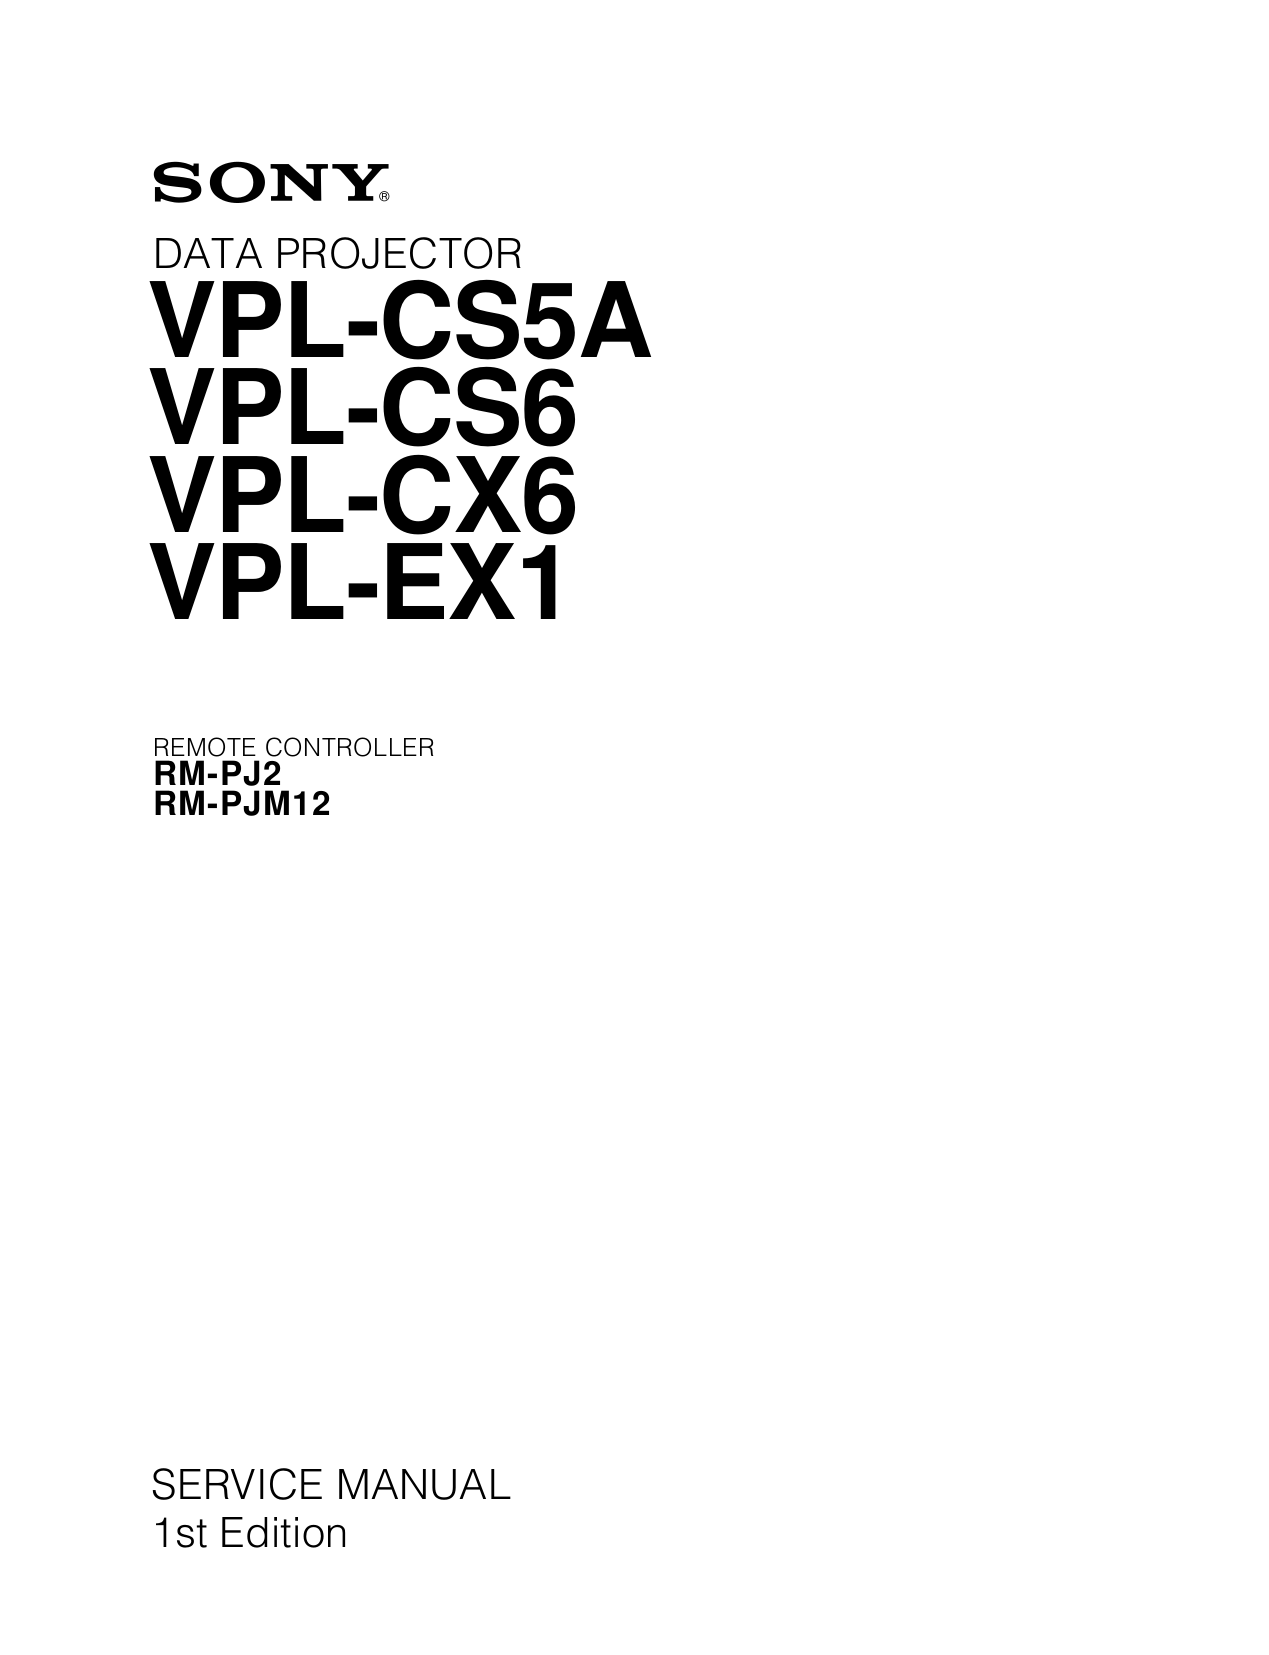 Download free pdf for Sony VPL-EX1 Projector manual